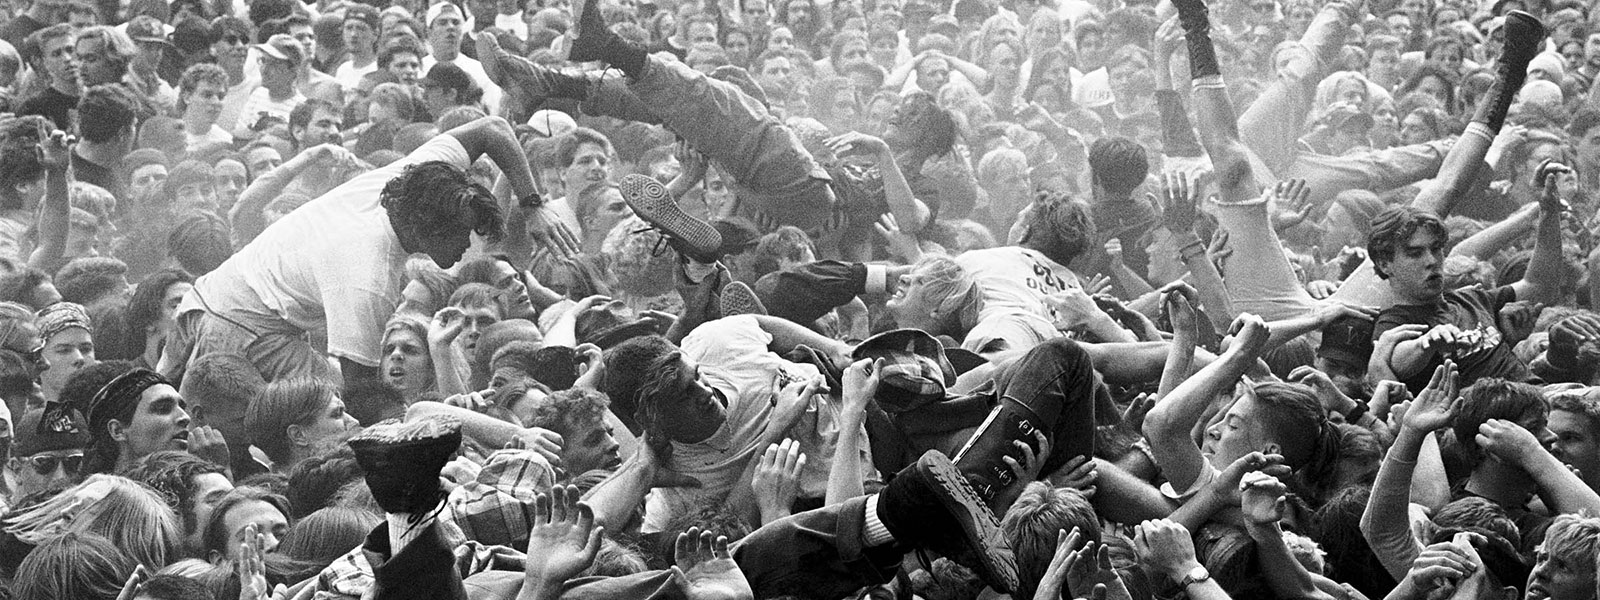 Mosh pit at EndFest.